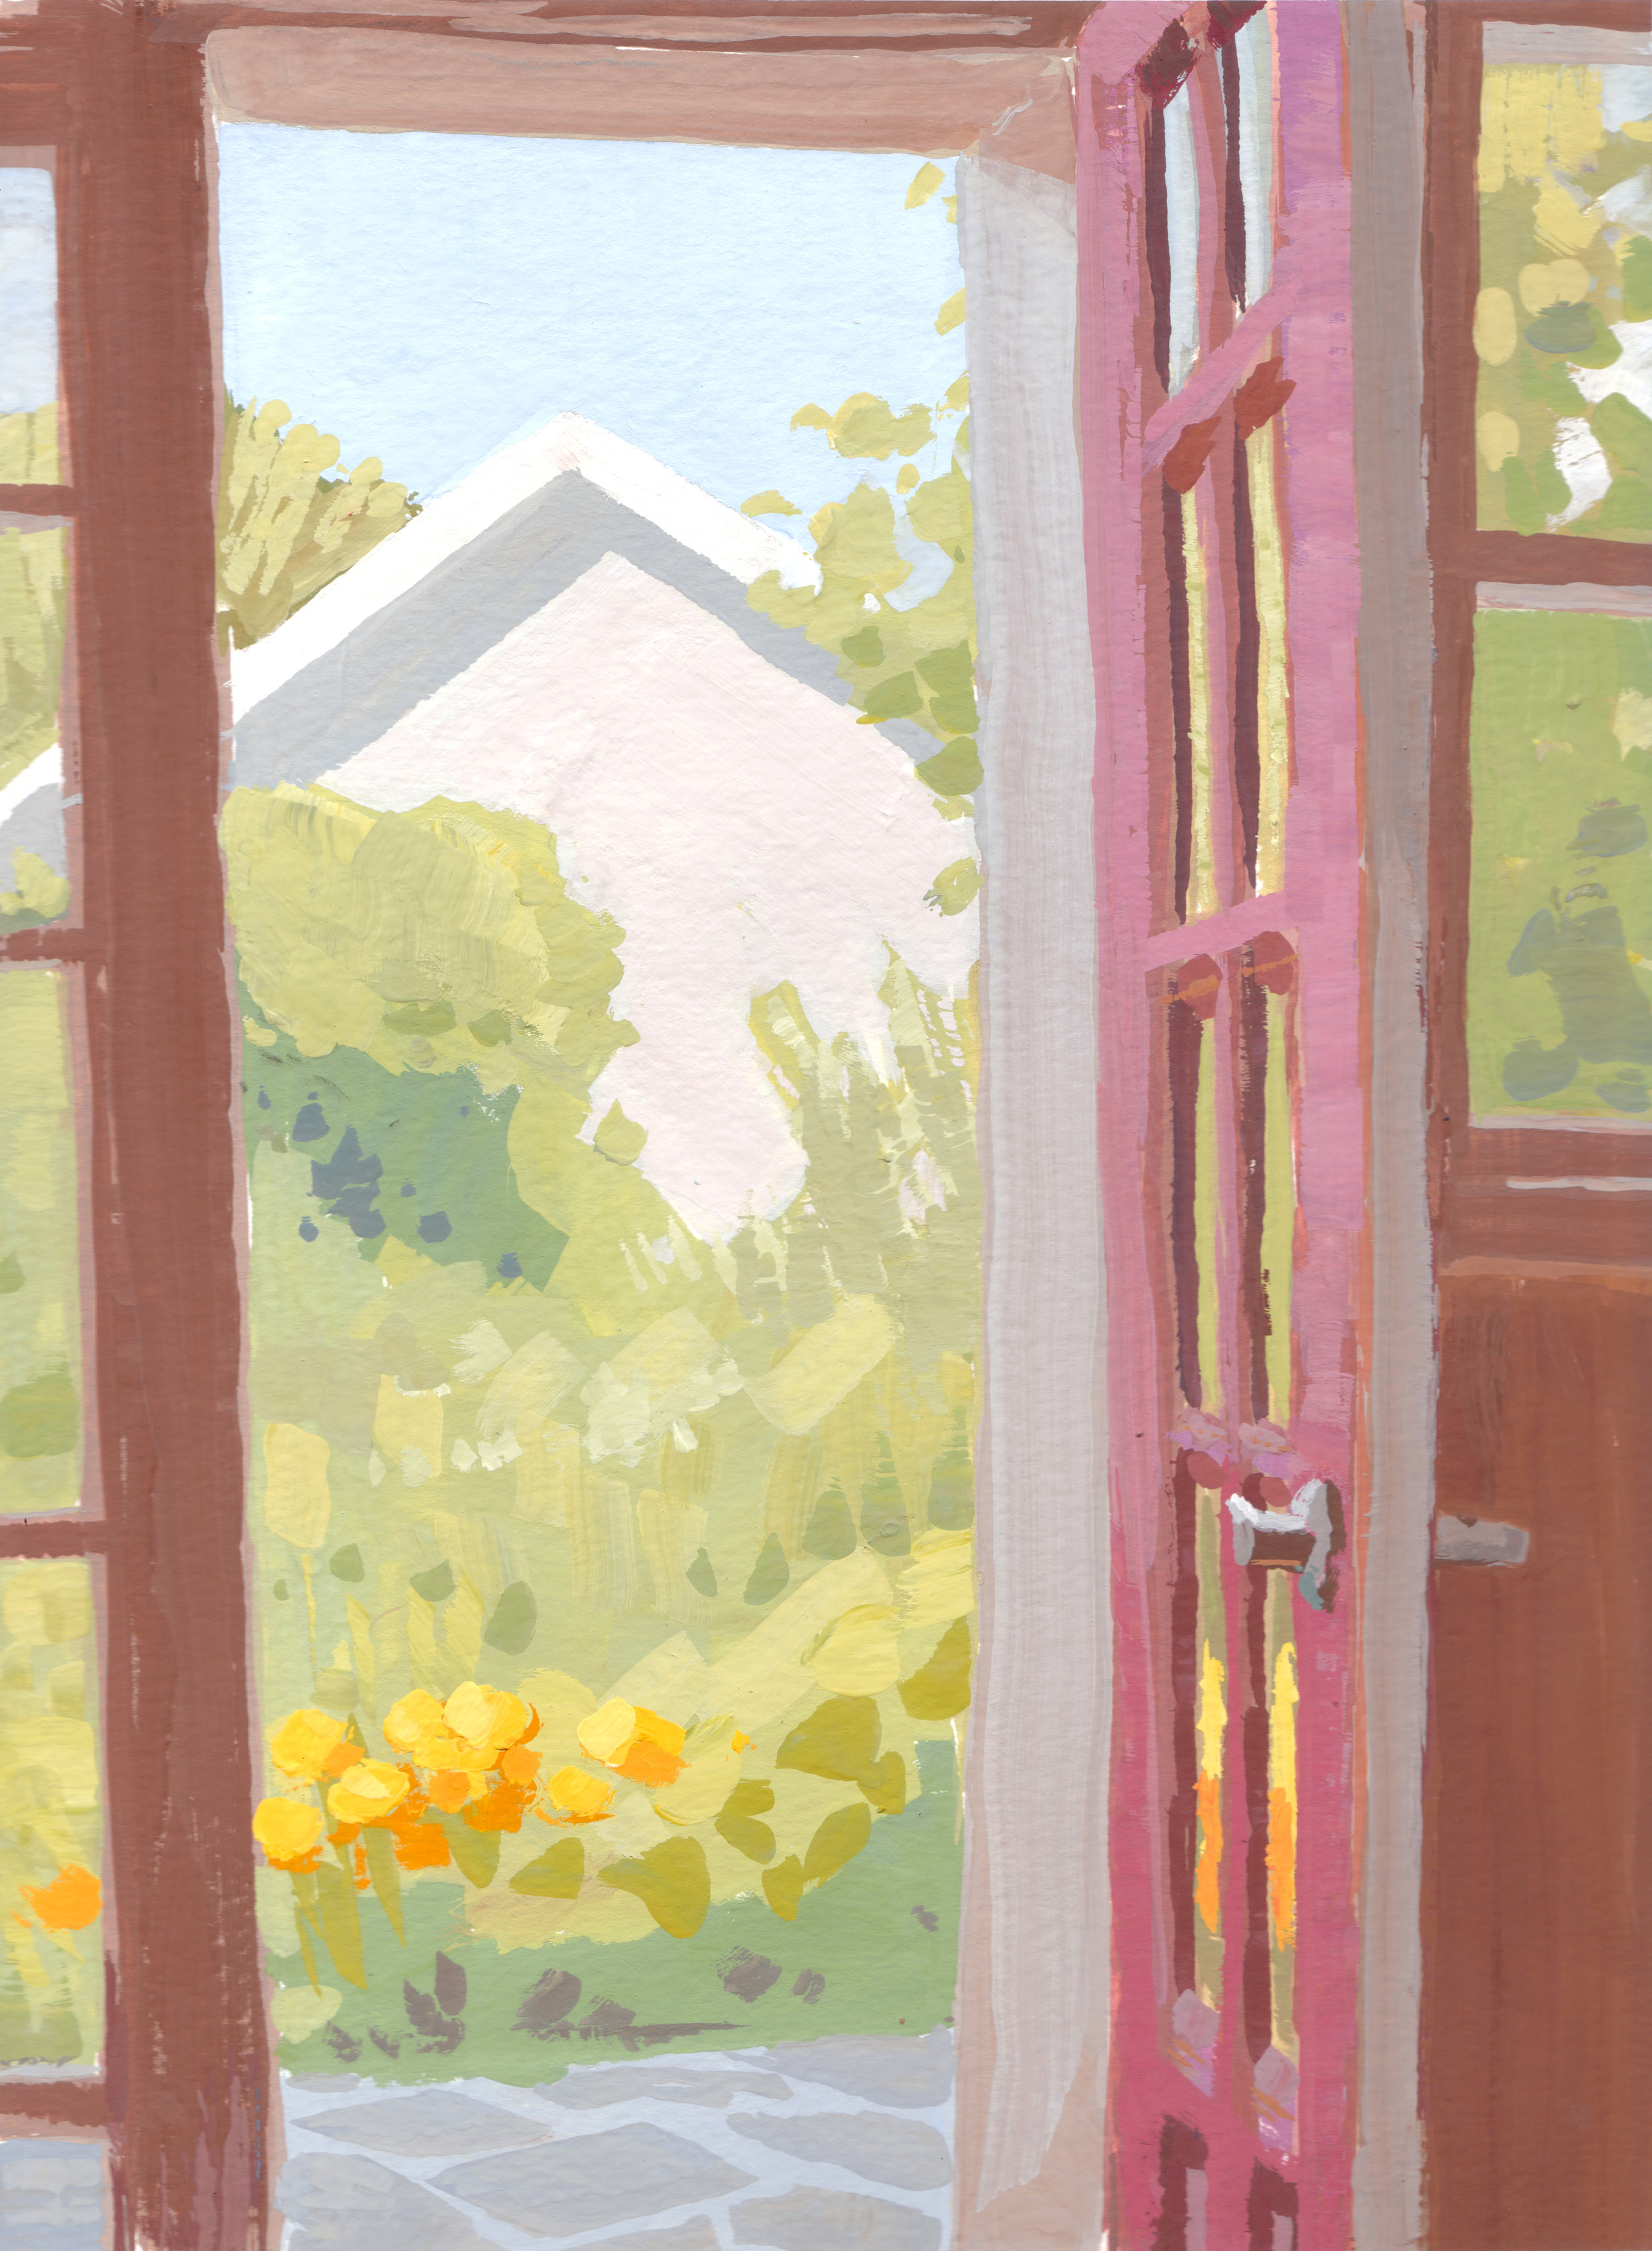 Kitchen Door to the Garden,  12 x 9 in.  Gouache on paper. Available for purchase. (2016)